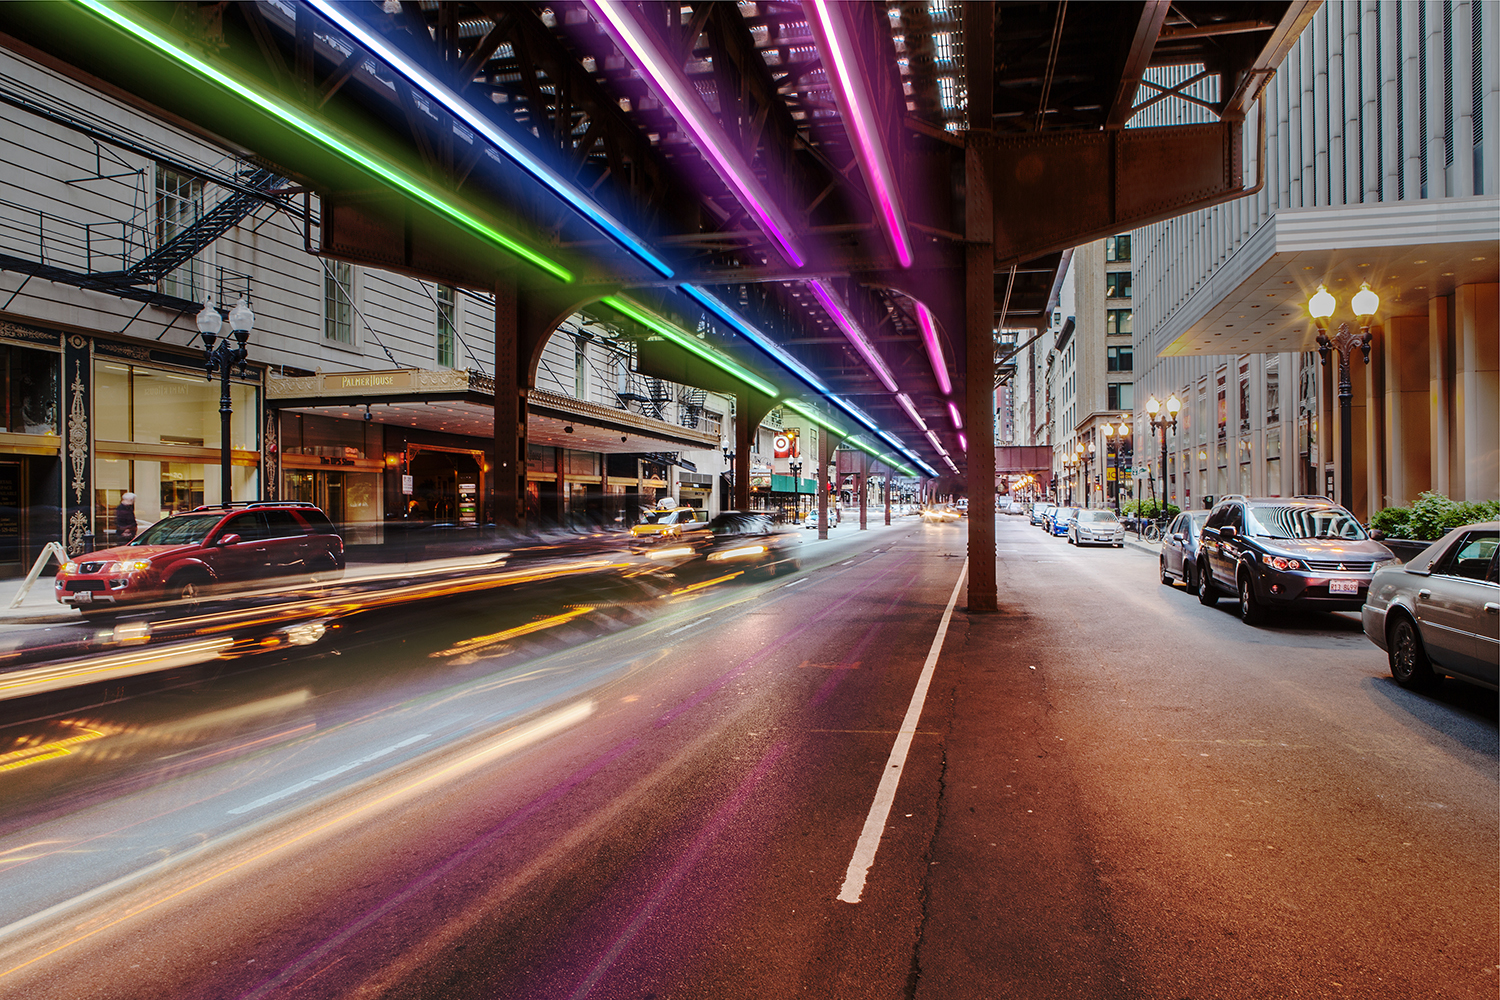 A rendering of what The Wabash Lights could look like